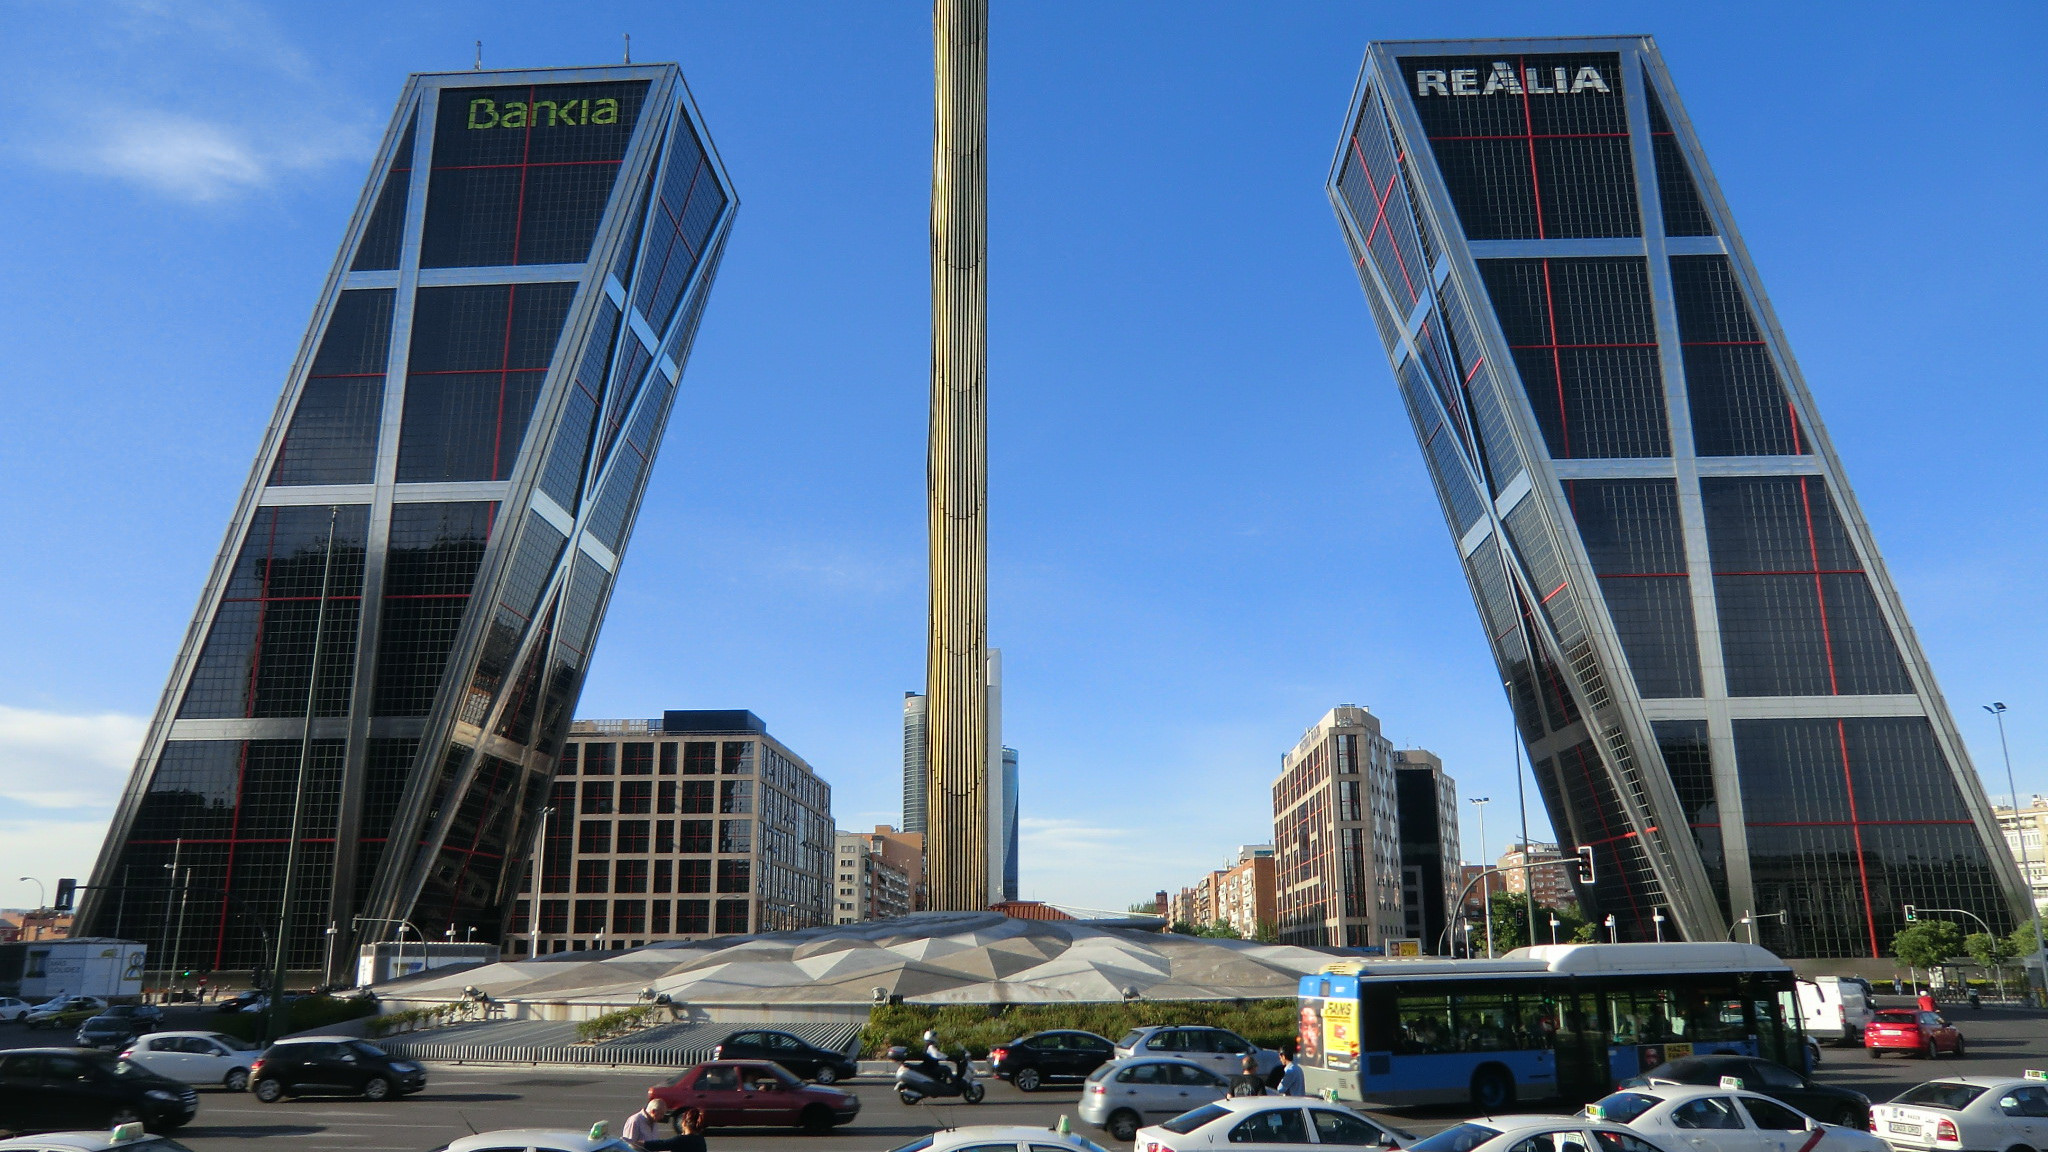 Plaza de Castilla a Madrid. Foto Reinhard Link